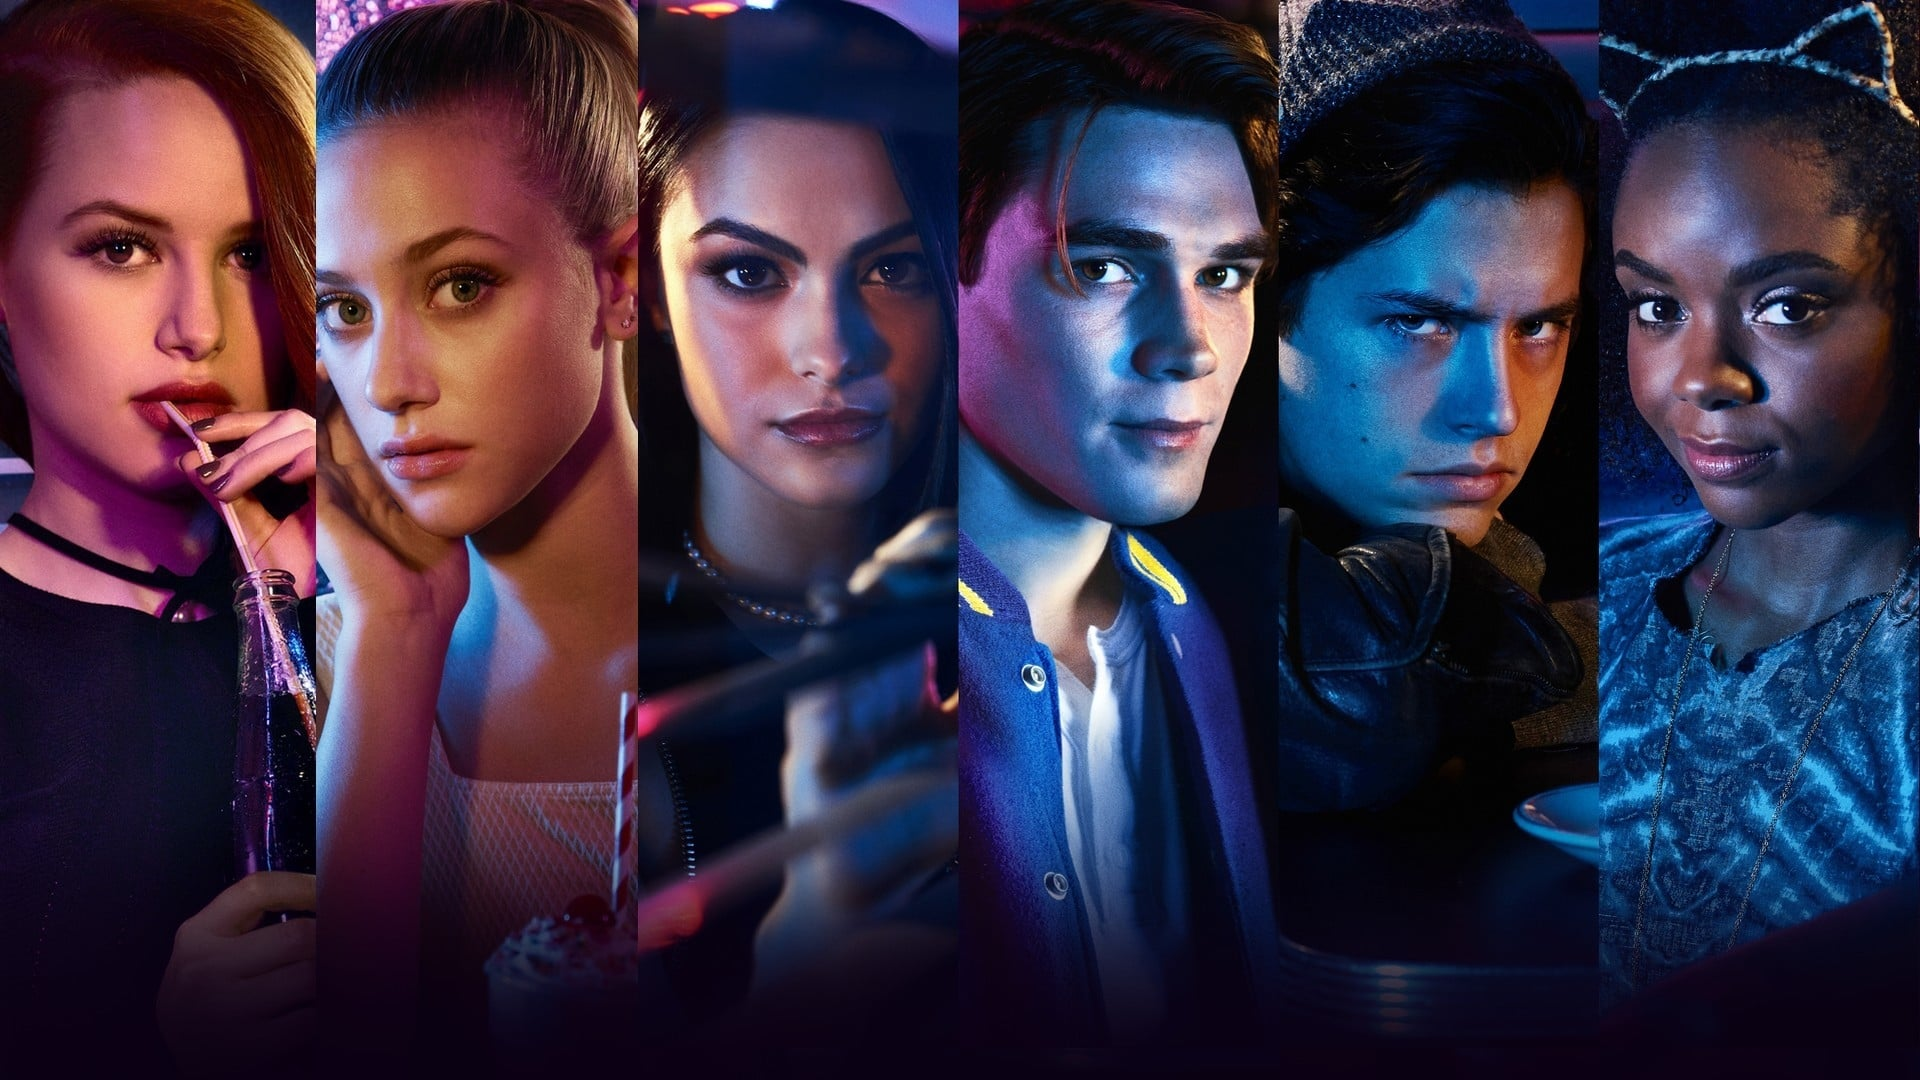 Itu0027s A Night Of Break Ups In This Weeku0027s Riverdale Episode, U201cChapter  Twenty One: House Of The Devil.u201d The Episode Feels A Bit Awkward, ...